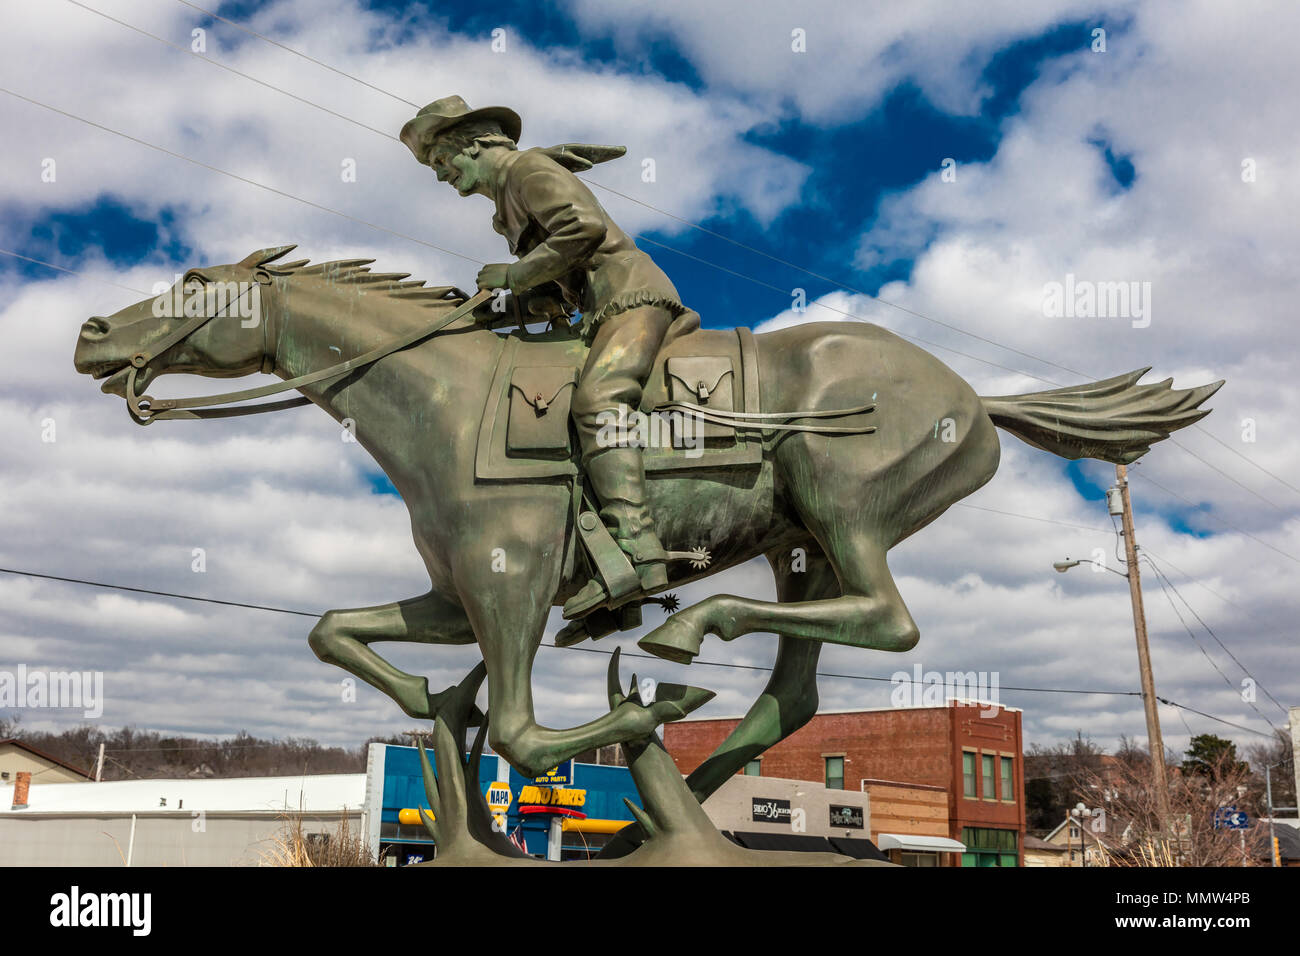 Equestrian Statue Commemorating the Pony Express, Marysville Kansas, Midwestern USA - Stock Image